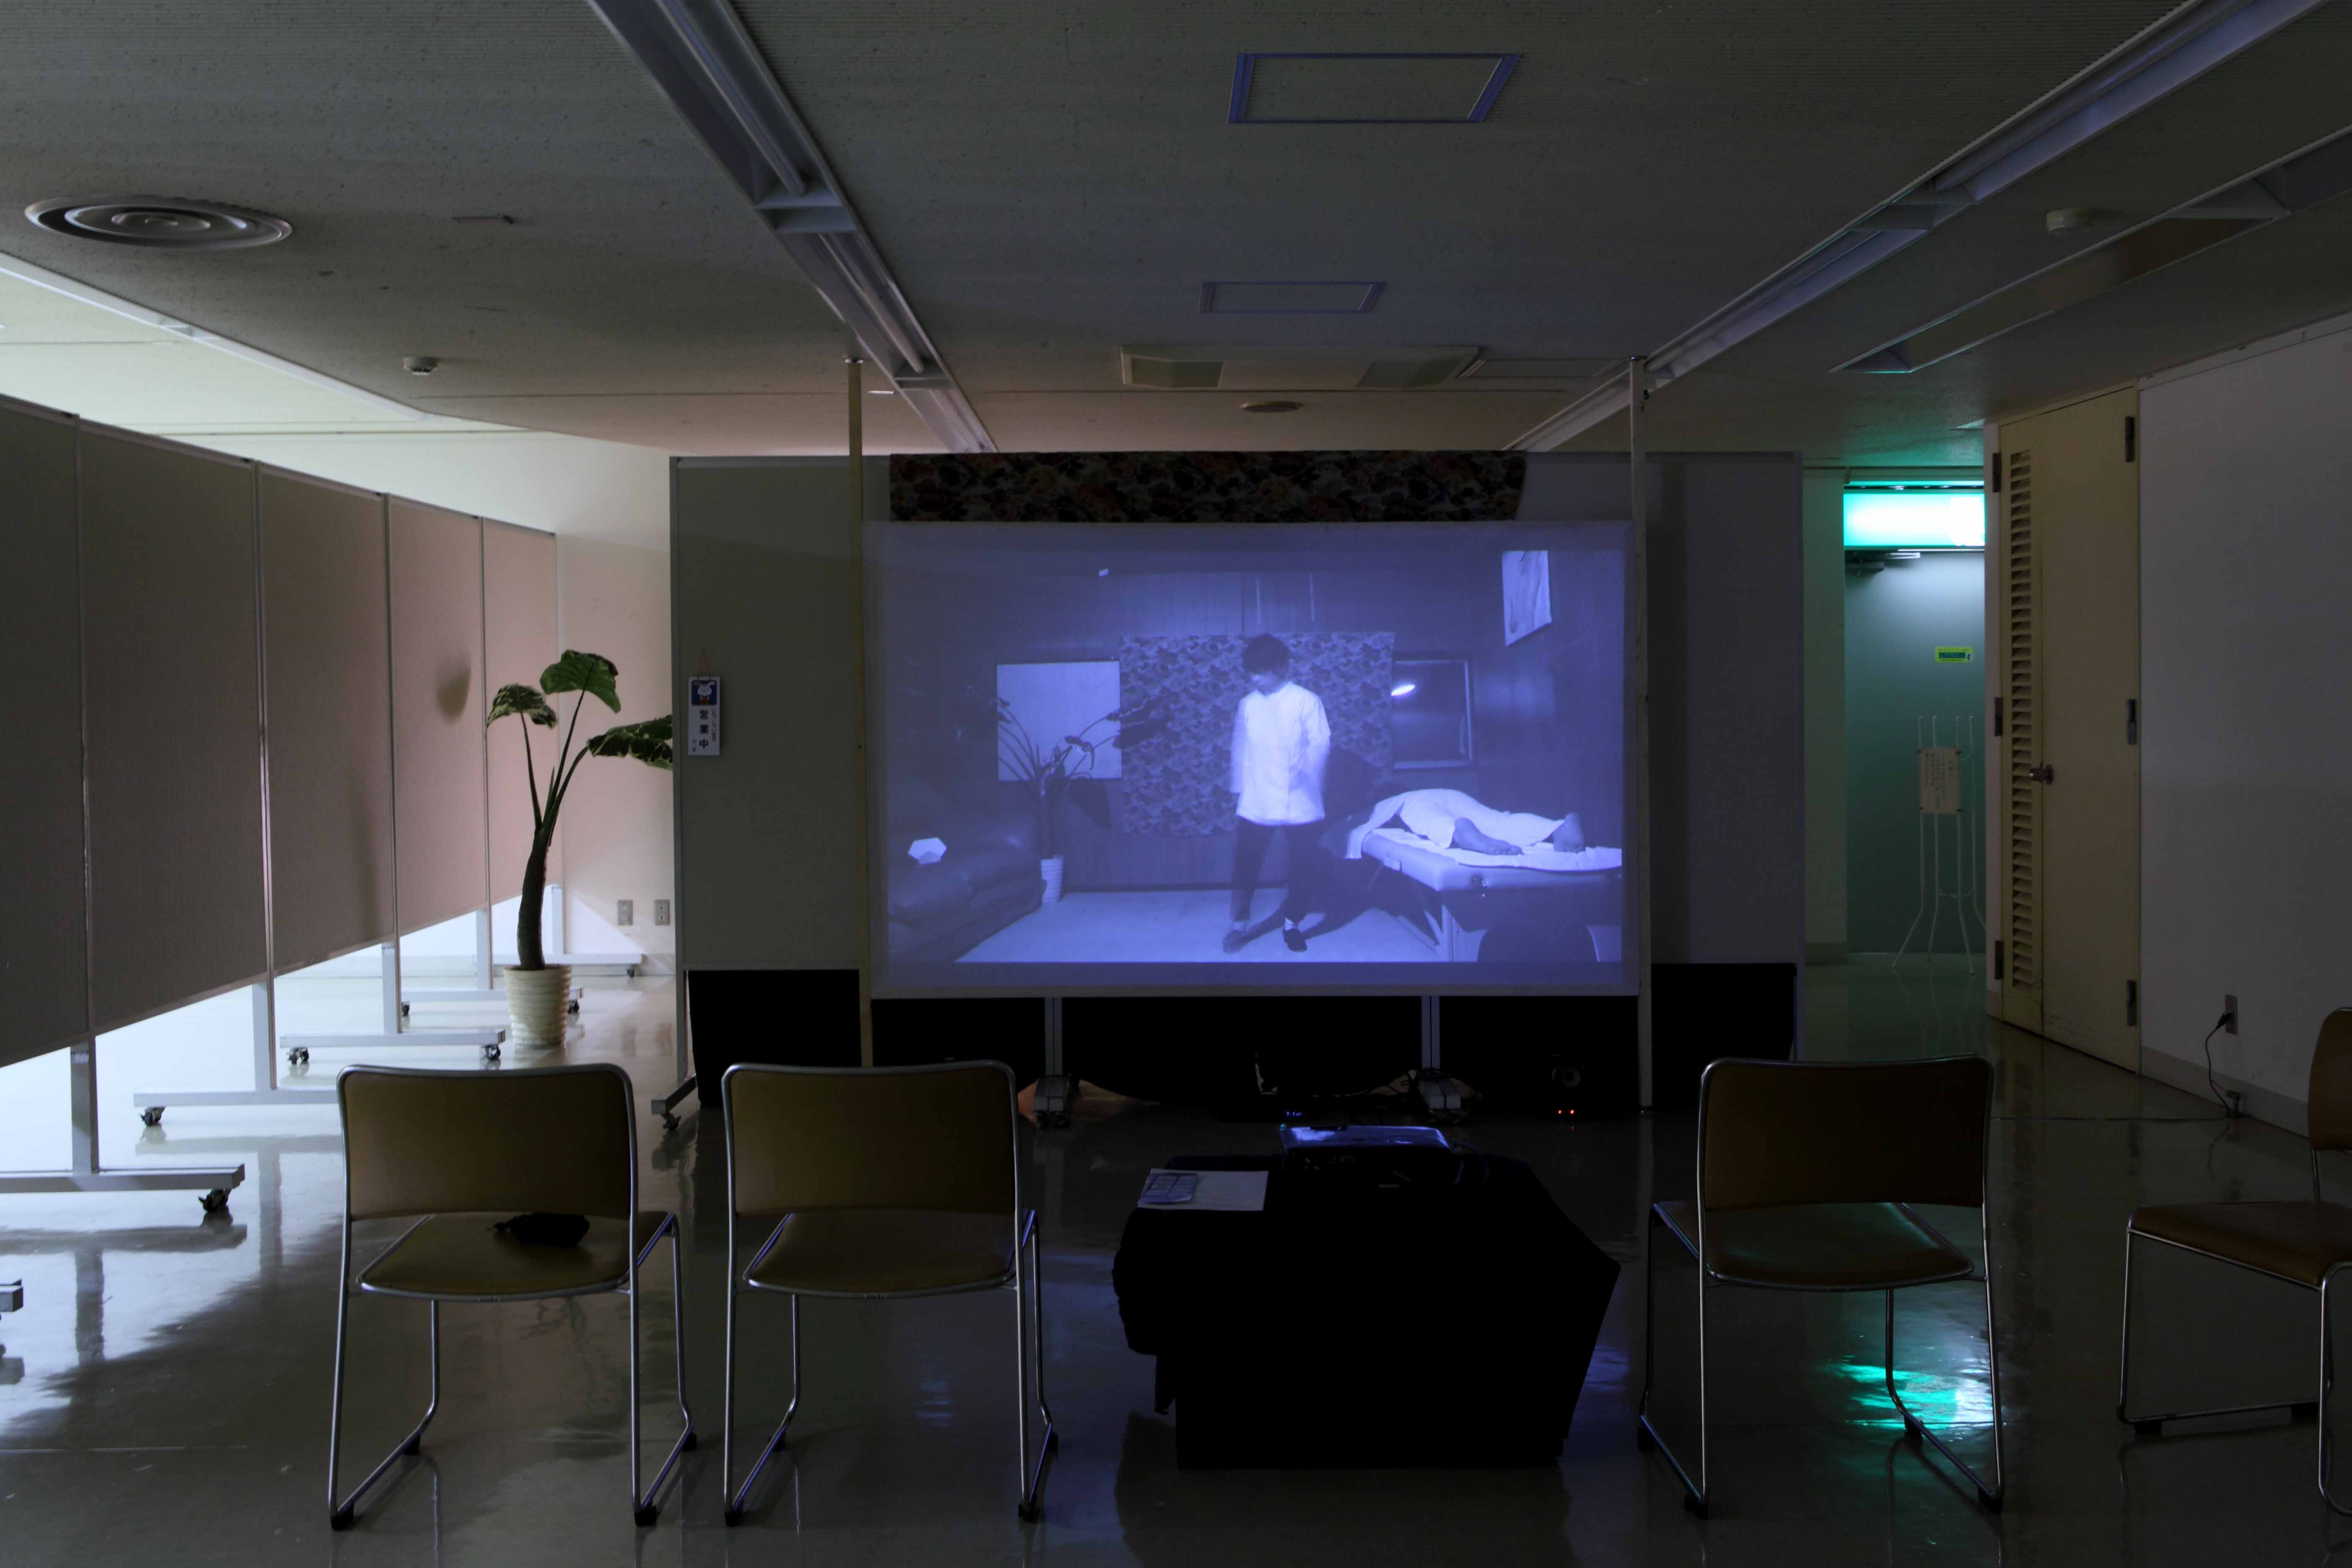 和田昌宏 / KOBU / 2015 / video installation